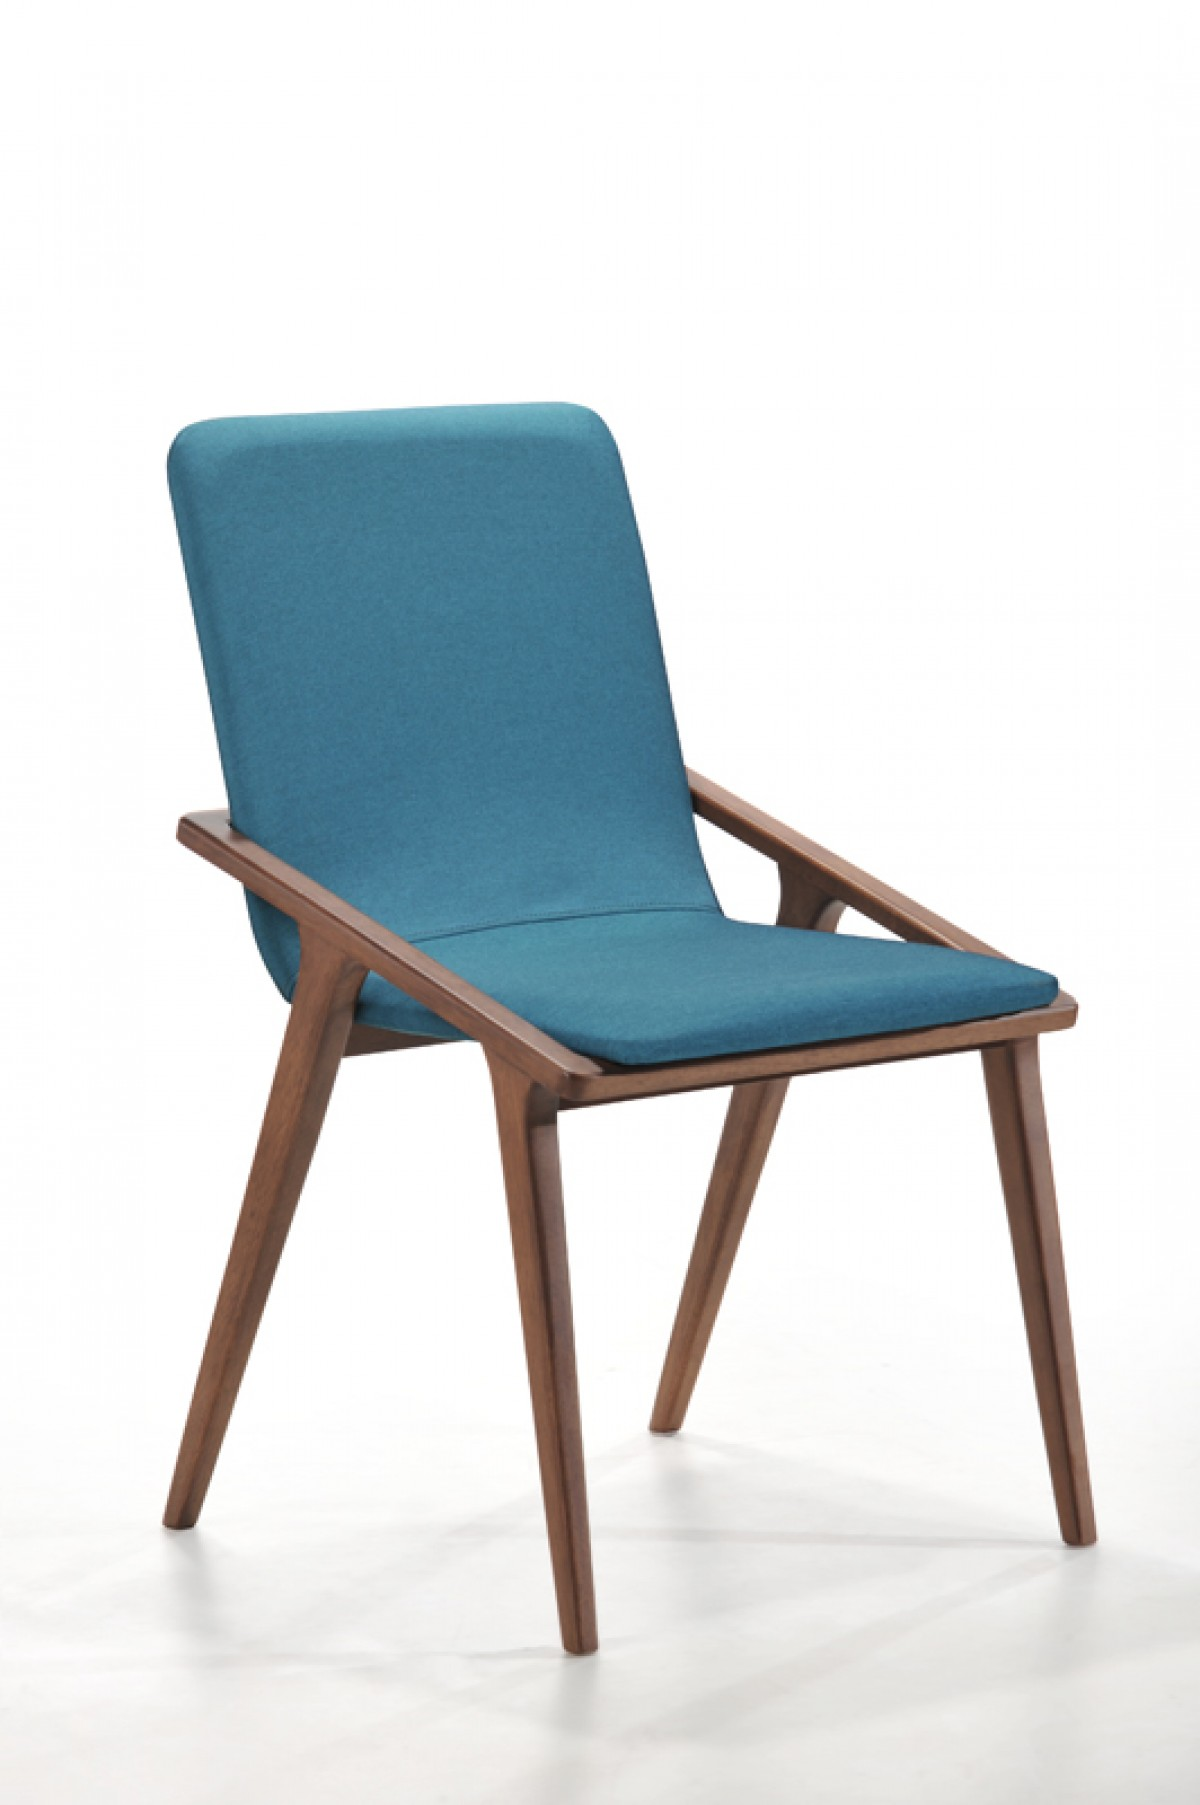 Modrest Zeppelin Modern Blue Dining Chair : mi 510 blue from vigfurniture.com size 1200 x 1805 jpeg 136kB